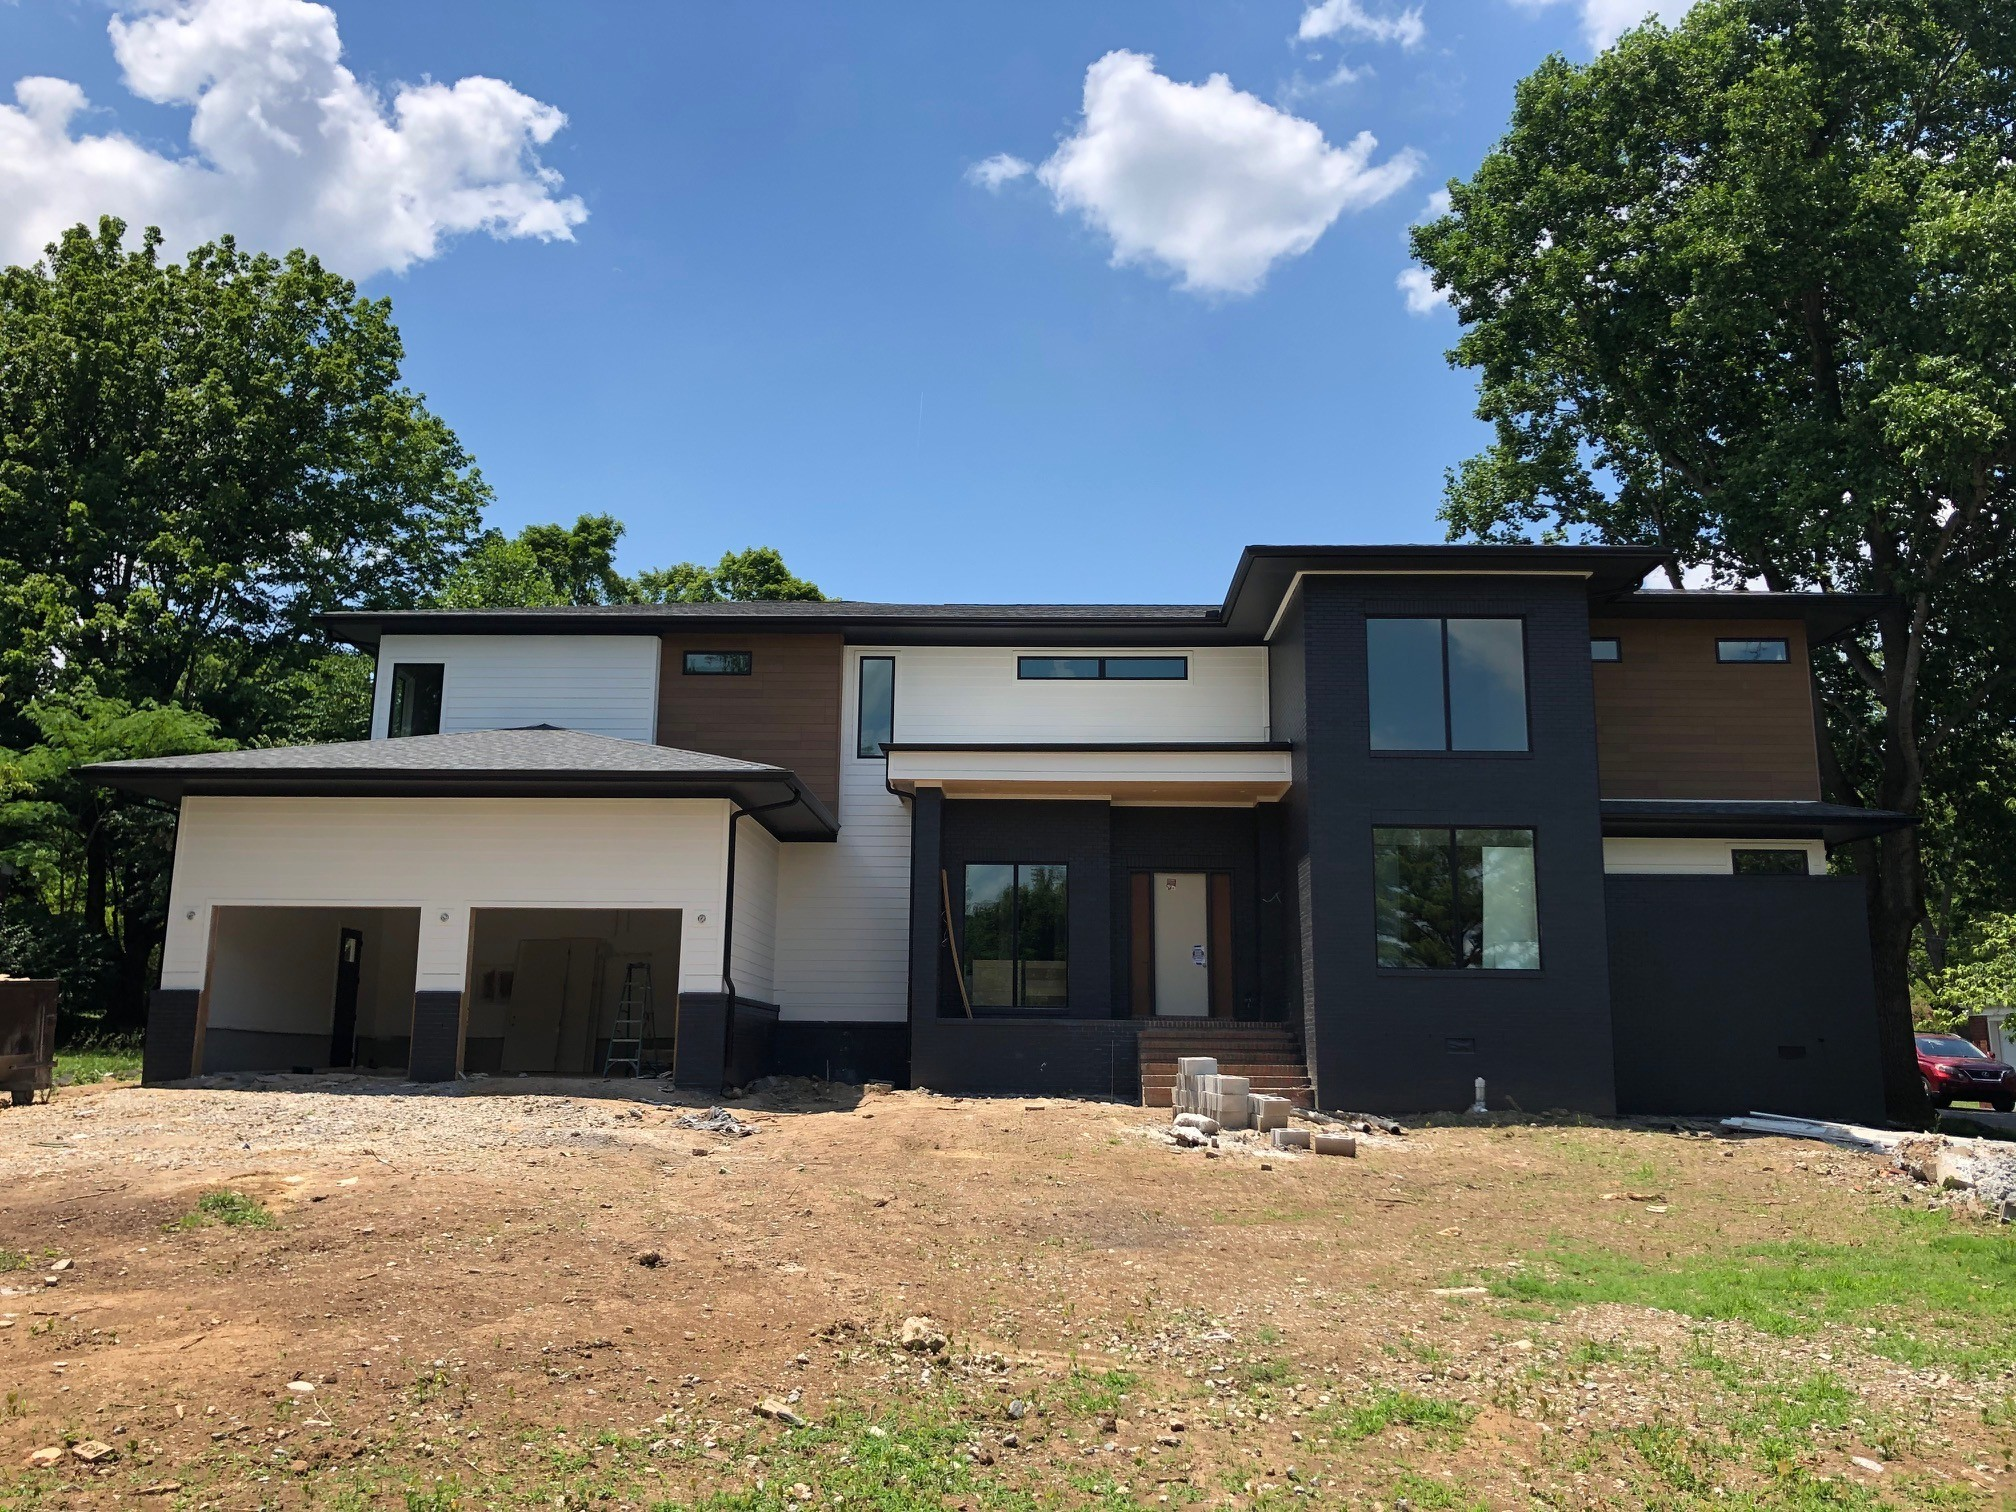 Incredible NEW build in Oak Hill! Province Builders LLC does it again with 4300+ square feet of exquisite design. This elevated modern features an incredible Master Suite, soaring ceilings, grand dining, open floor plan for easy living and entertaining, 3 suited guest rooms, and a level, fenced-in back yard with room for a pool.